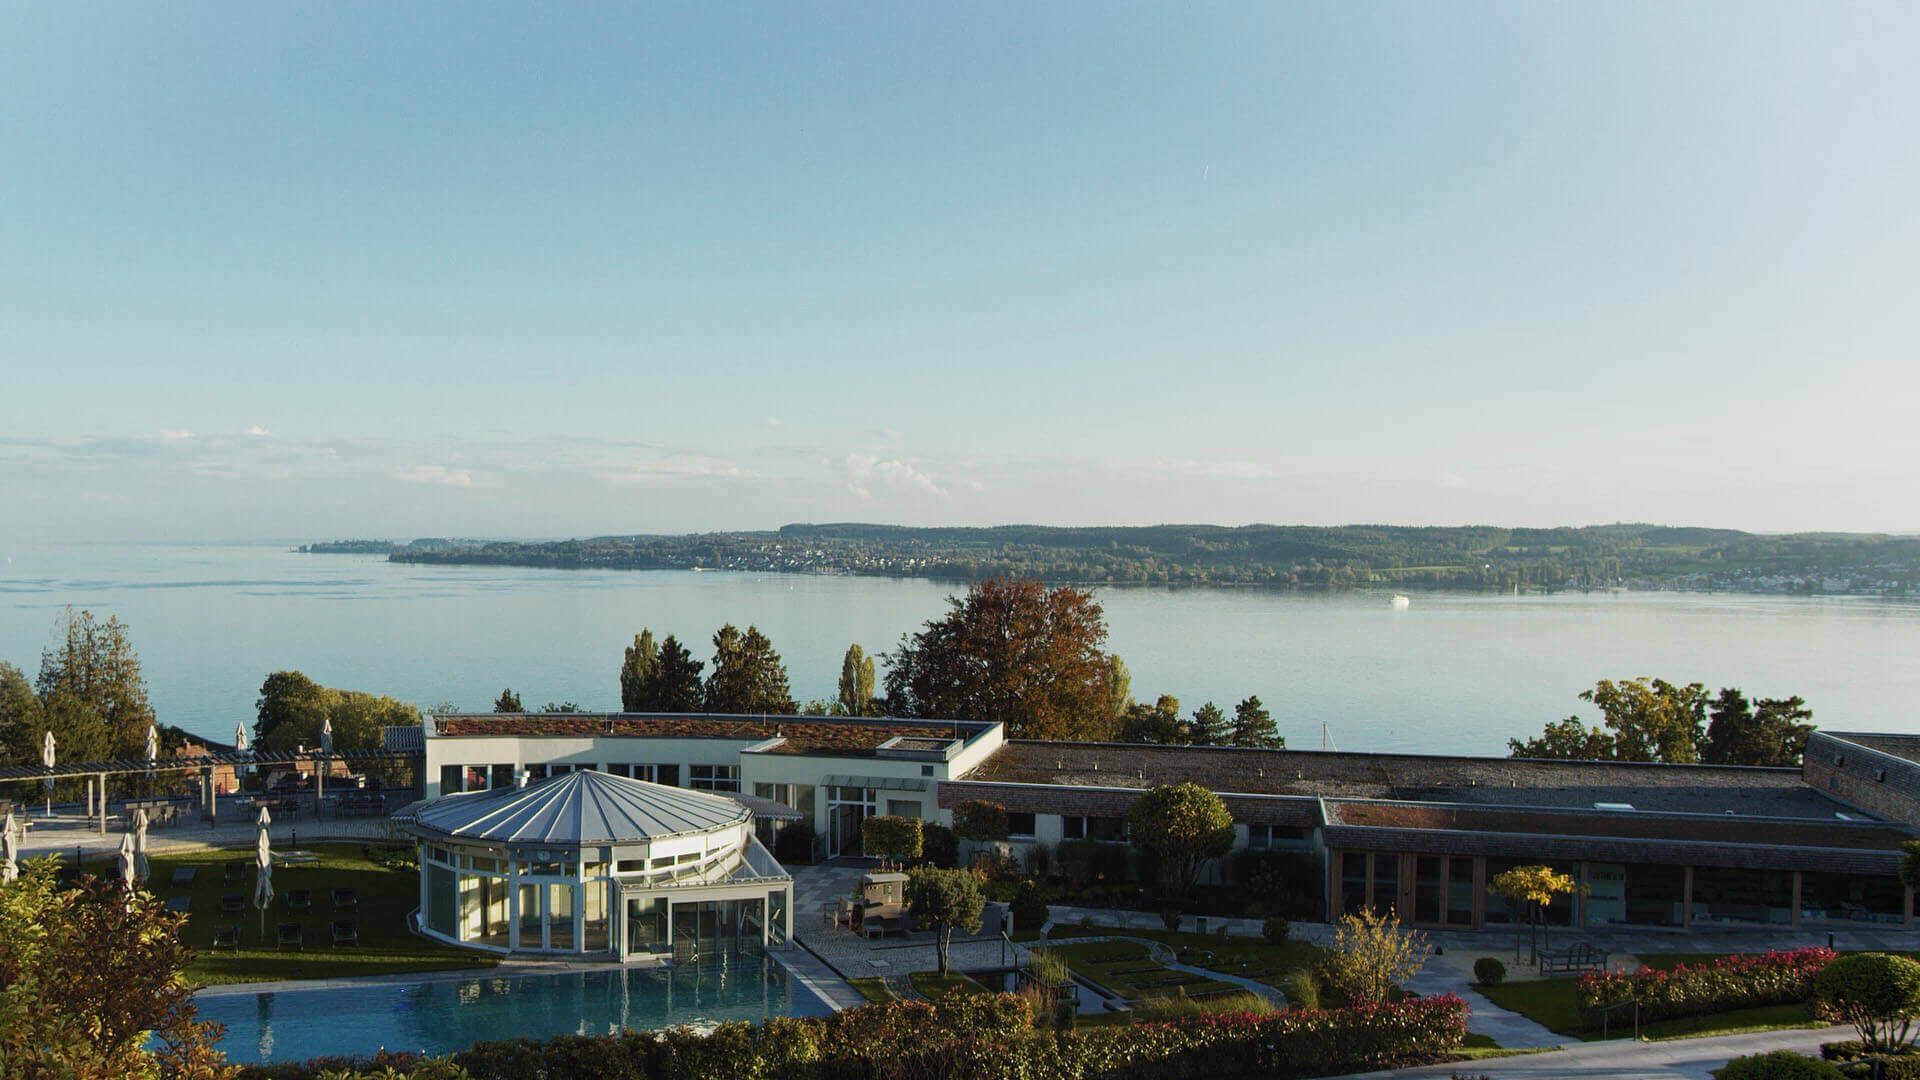 Buchinger Wilhelmi, Fasten, Heilfasten, Fasting, Health, Integrative Medicine, Pool, Lake of Constance, Bodensee, Garden, View